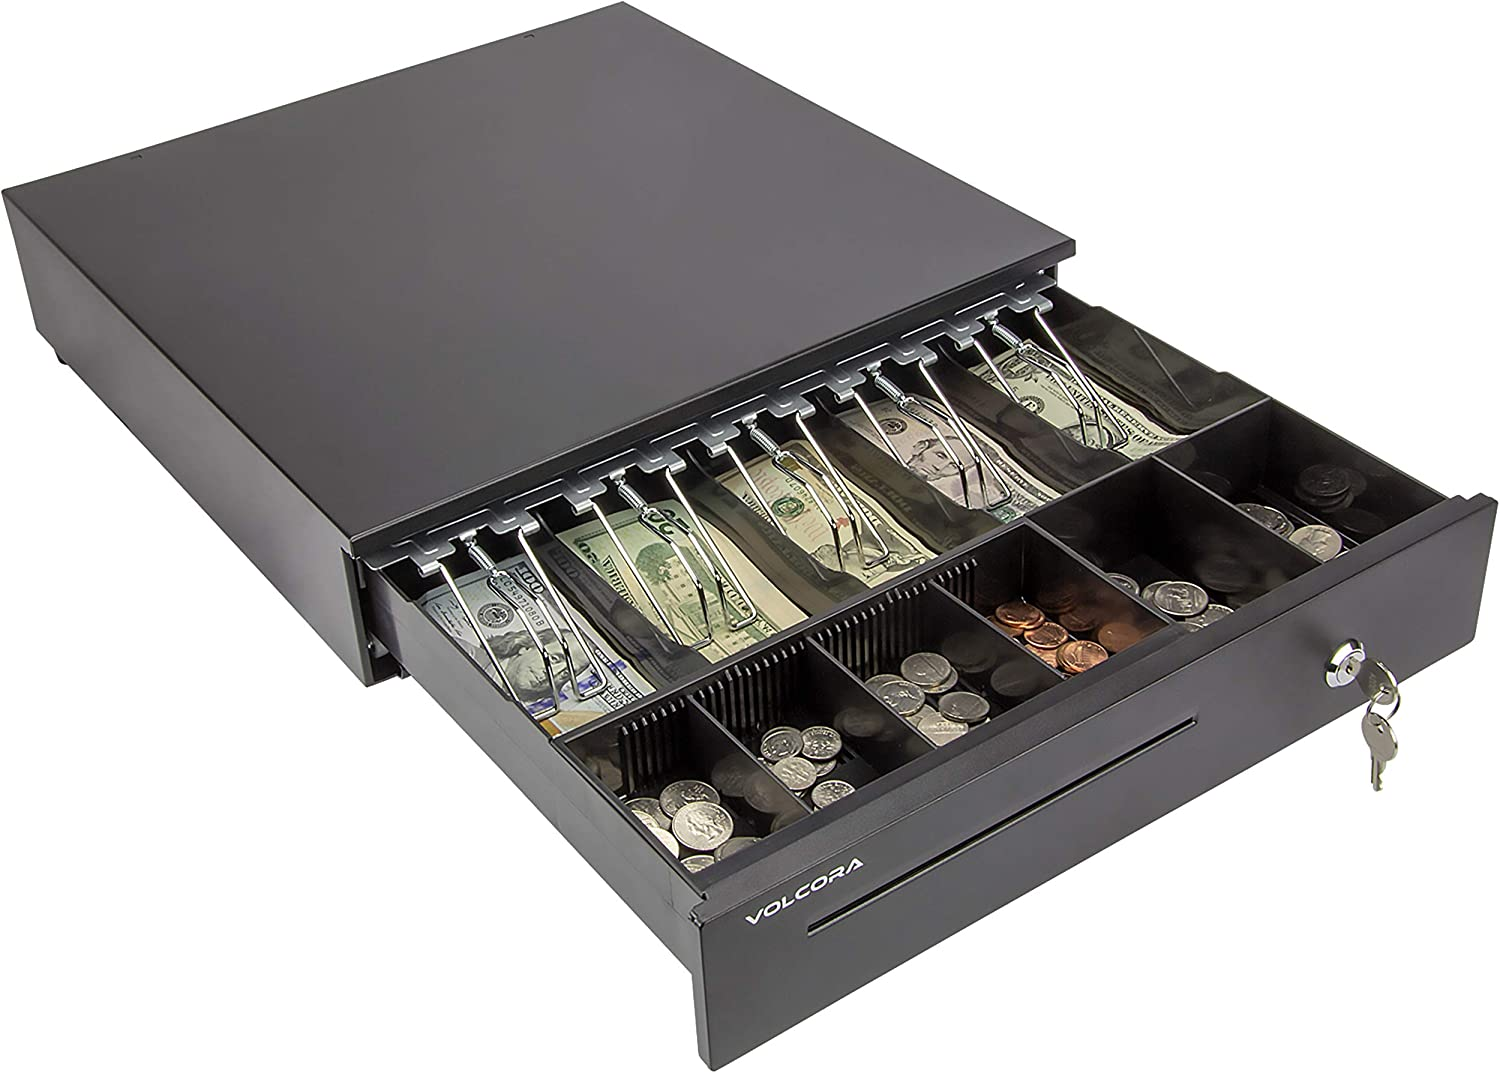 Cash Register Drawer for Point of Sale (POS) System with 5 Bill 6 Coin Cash Tray, Removable Coin Compartment, 24V, RJ11/RJ12 Key-Lock, Media Slot, Black